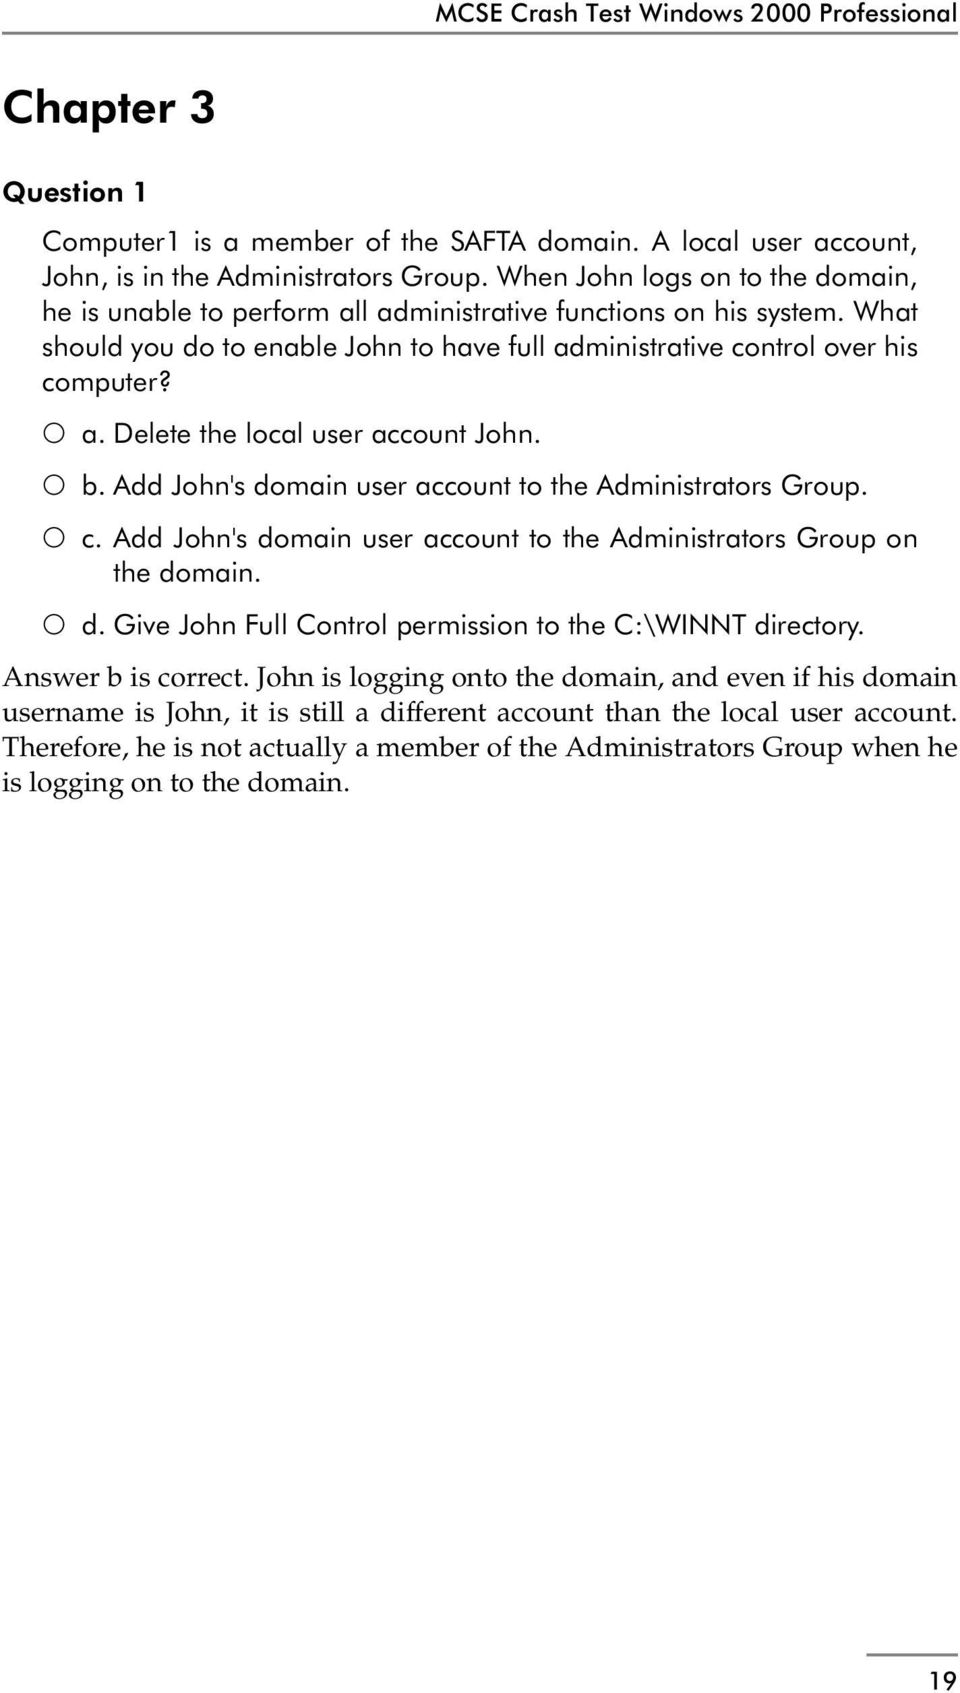 b. Add John's domain user account to the Administrators Group. c. Add John's domain user account to the Administrators Group on the domain. d. Give John Full Control permission to the C:\WINNT directory.